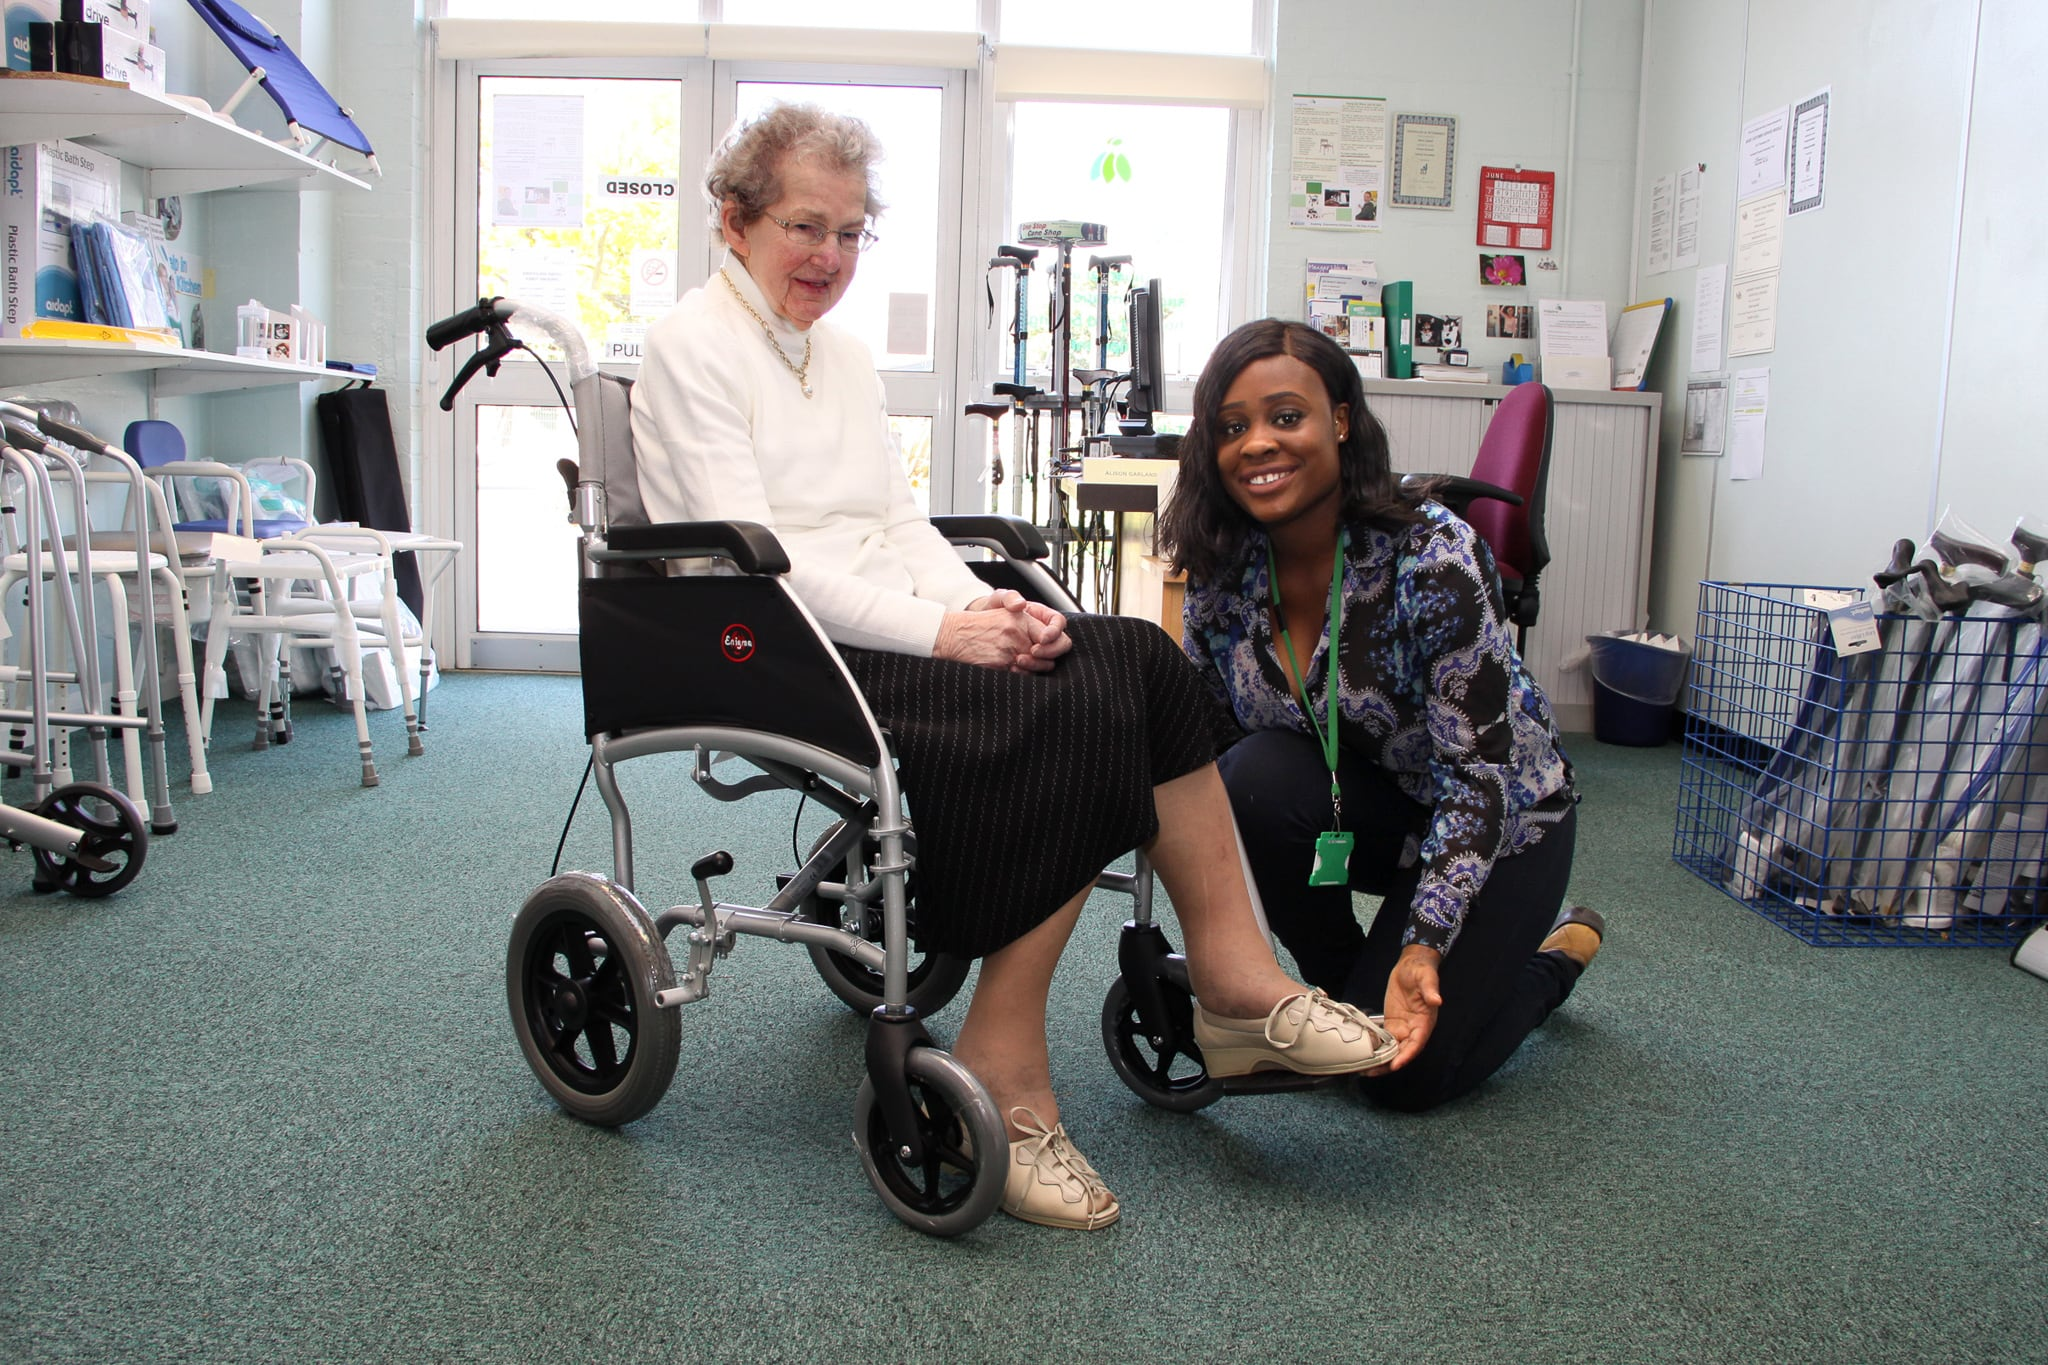 An old woman in a wheelchair with a carer.